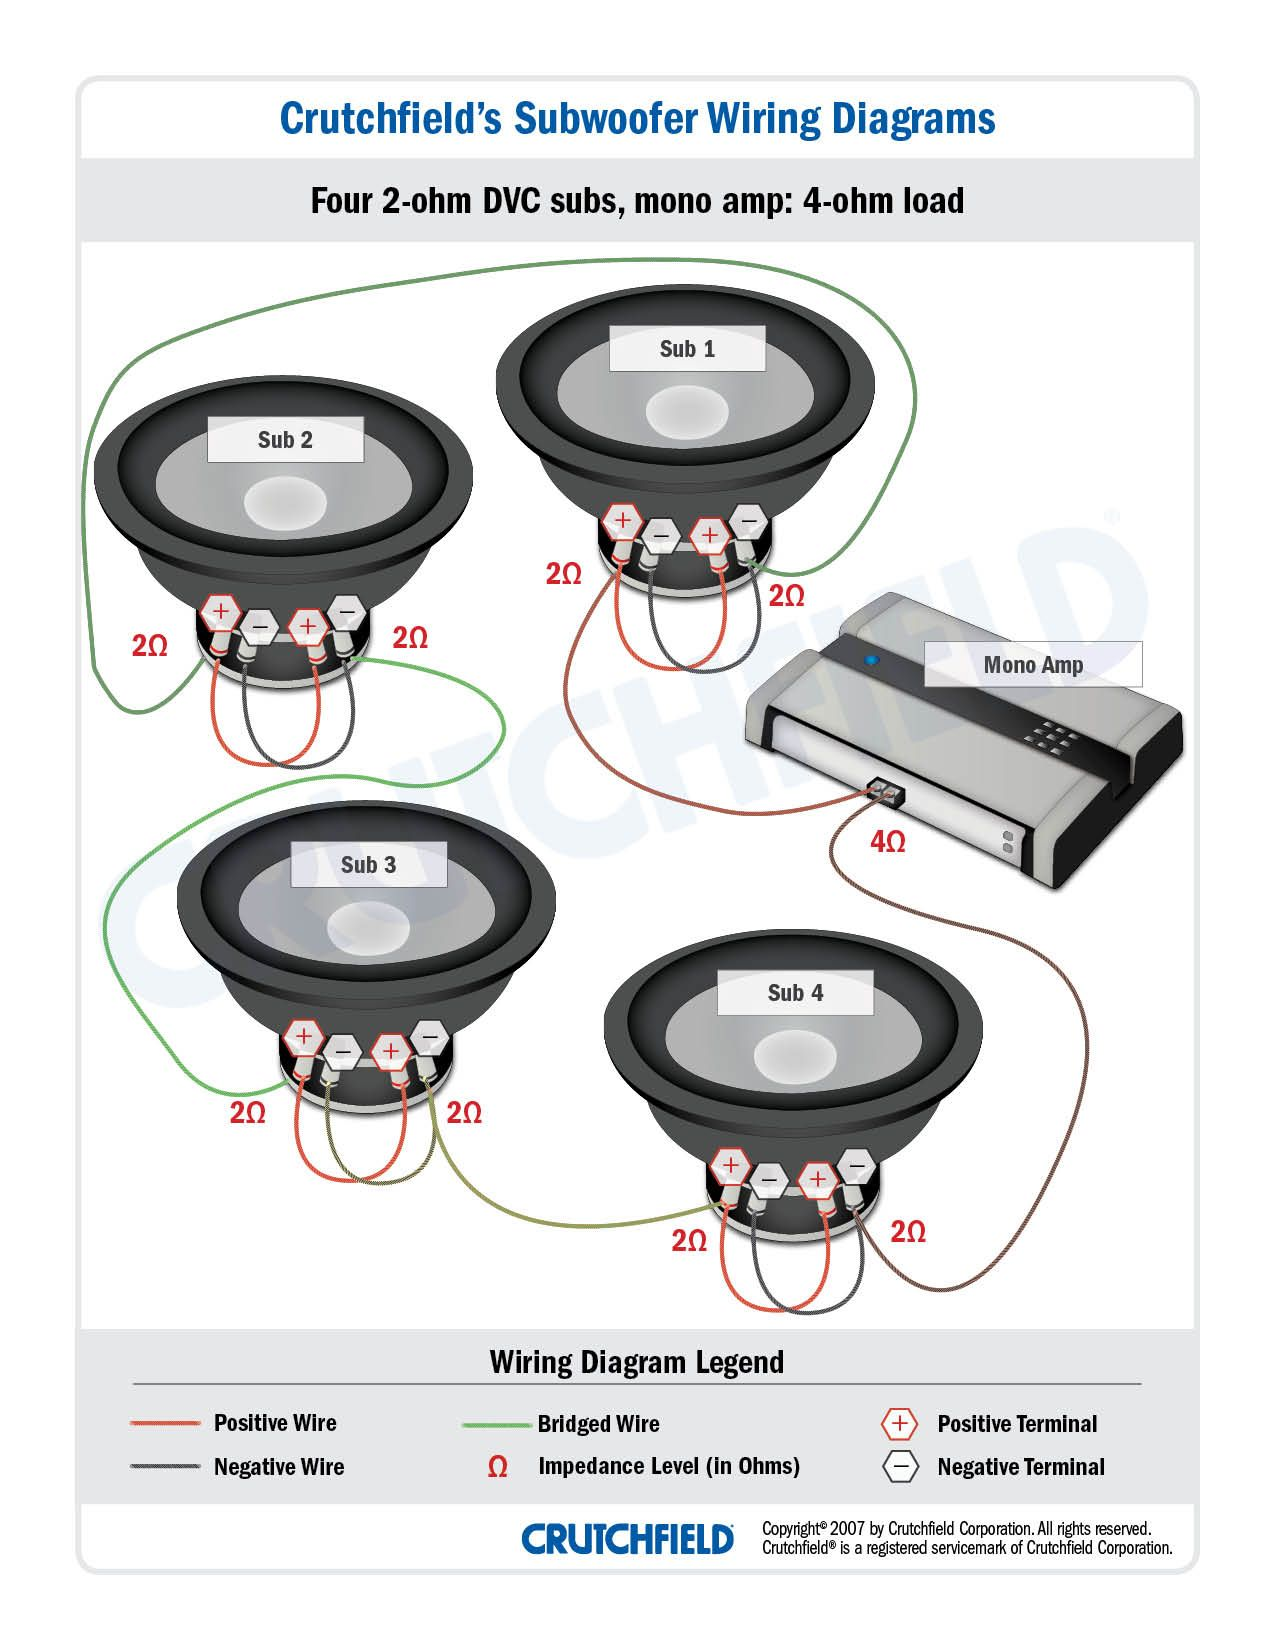 Top 10 subwoofer wiring diagram free download 4 dvc 2 ohm mono top top 10 subwoofer wiring diagram free download 4 dvc 2 ohm mono top 10 subwoofer wiring sciox Images